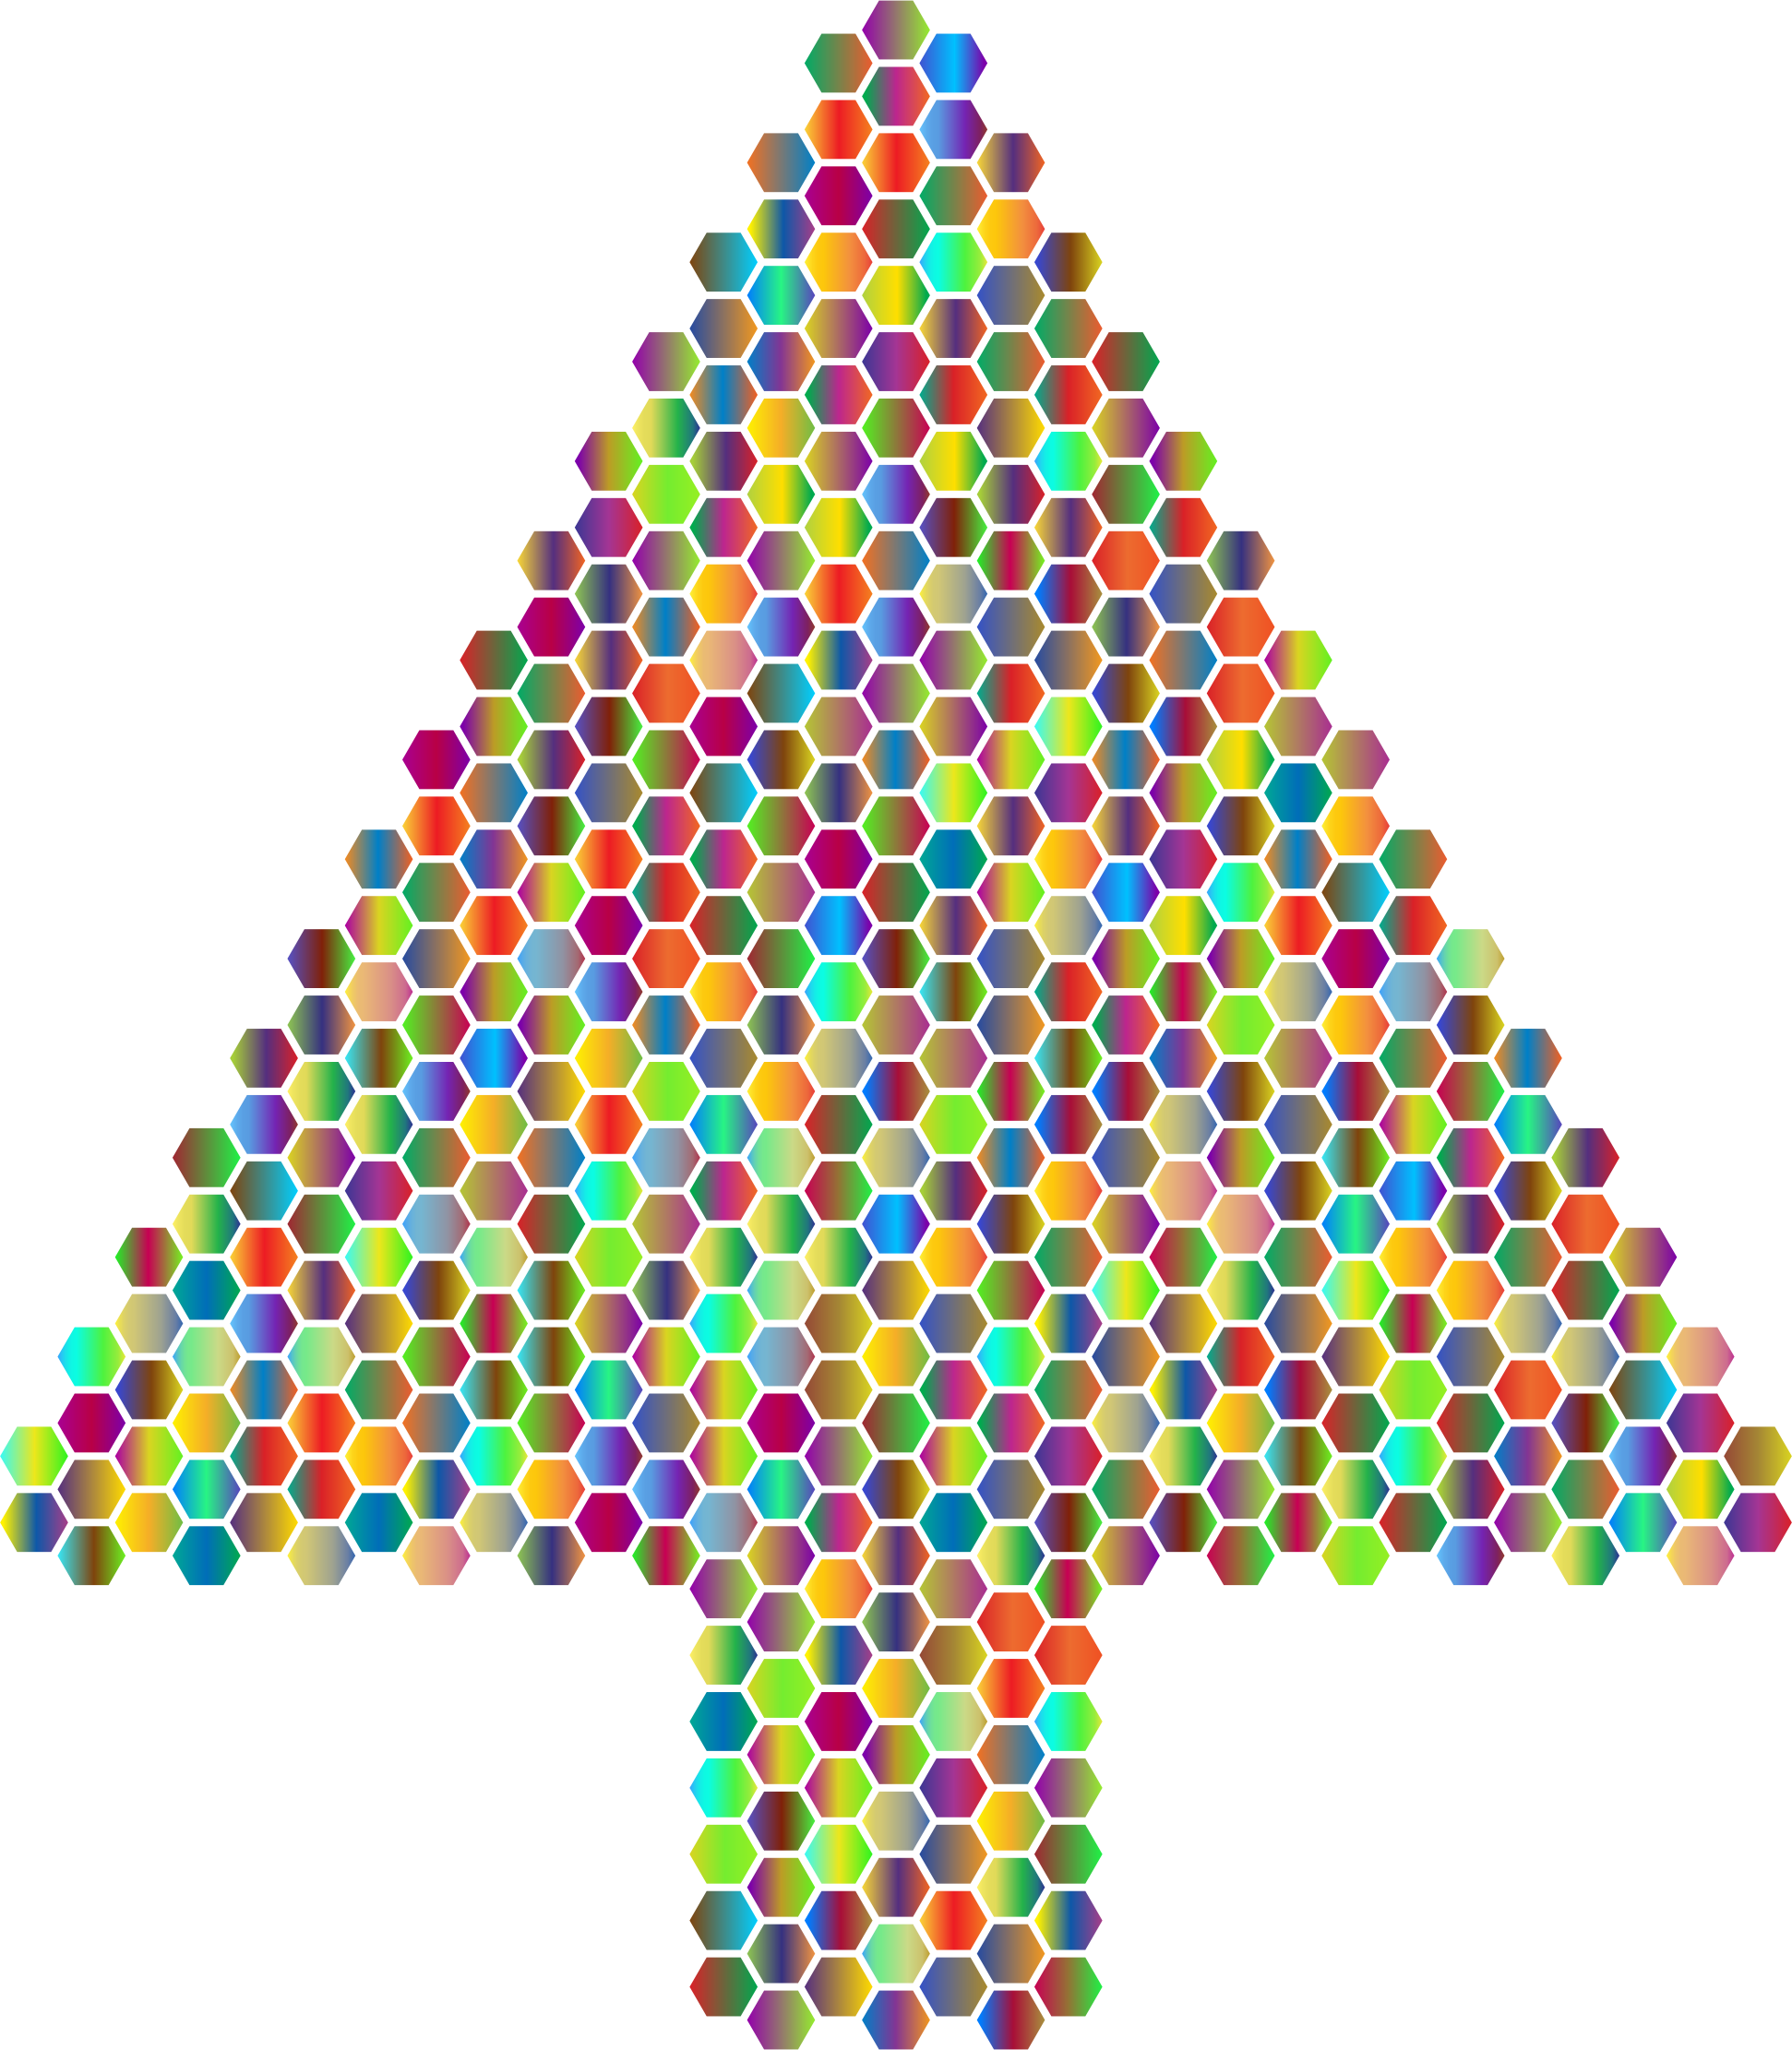 Prismatic Hexagonal Abstract Christmas Tree 4 by GDJ